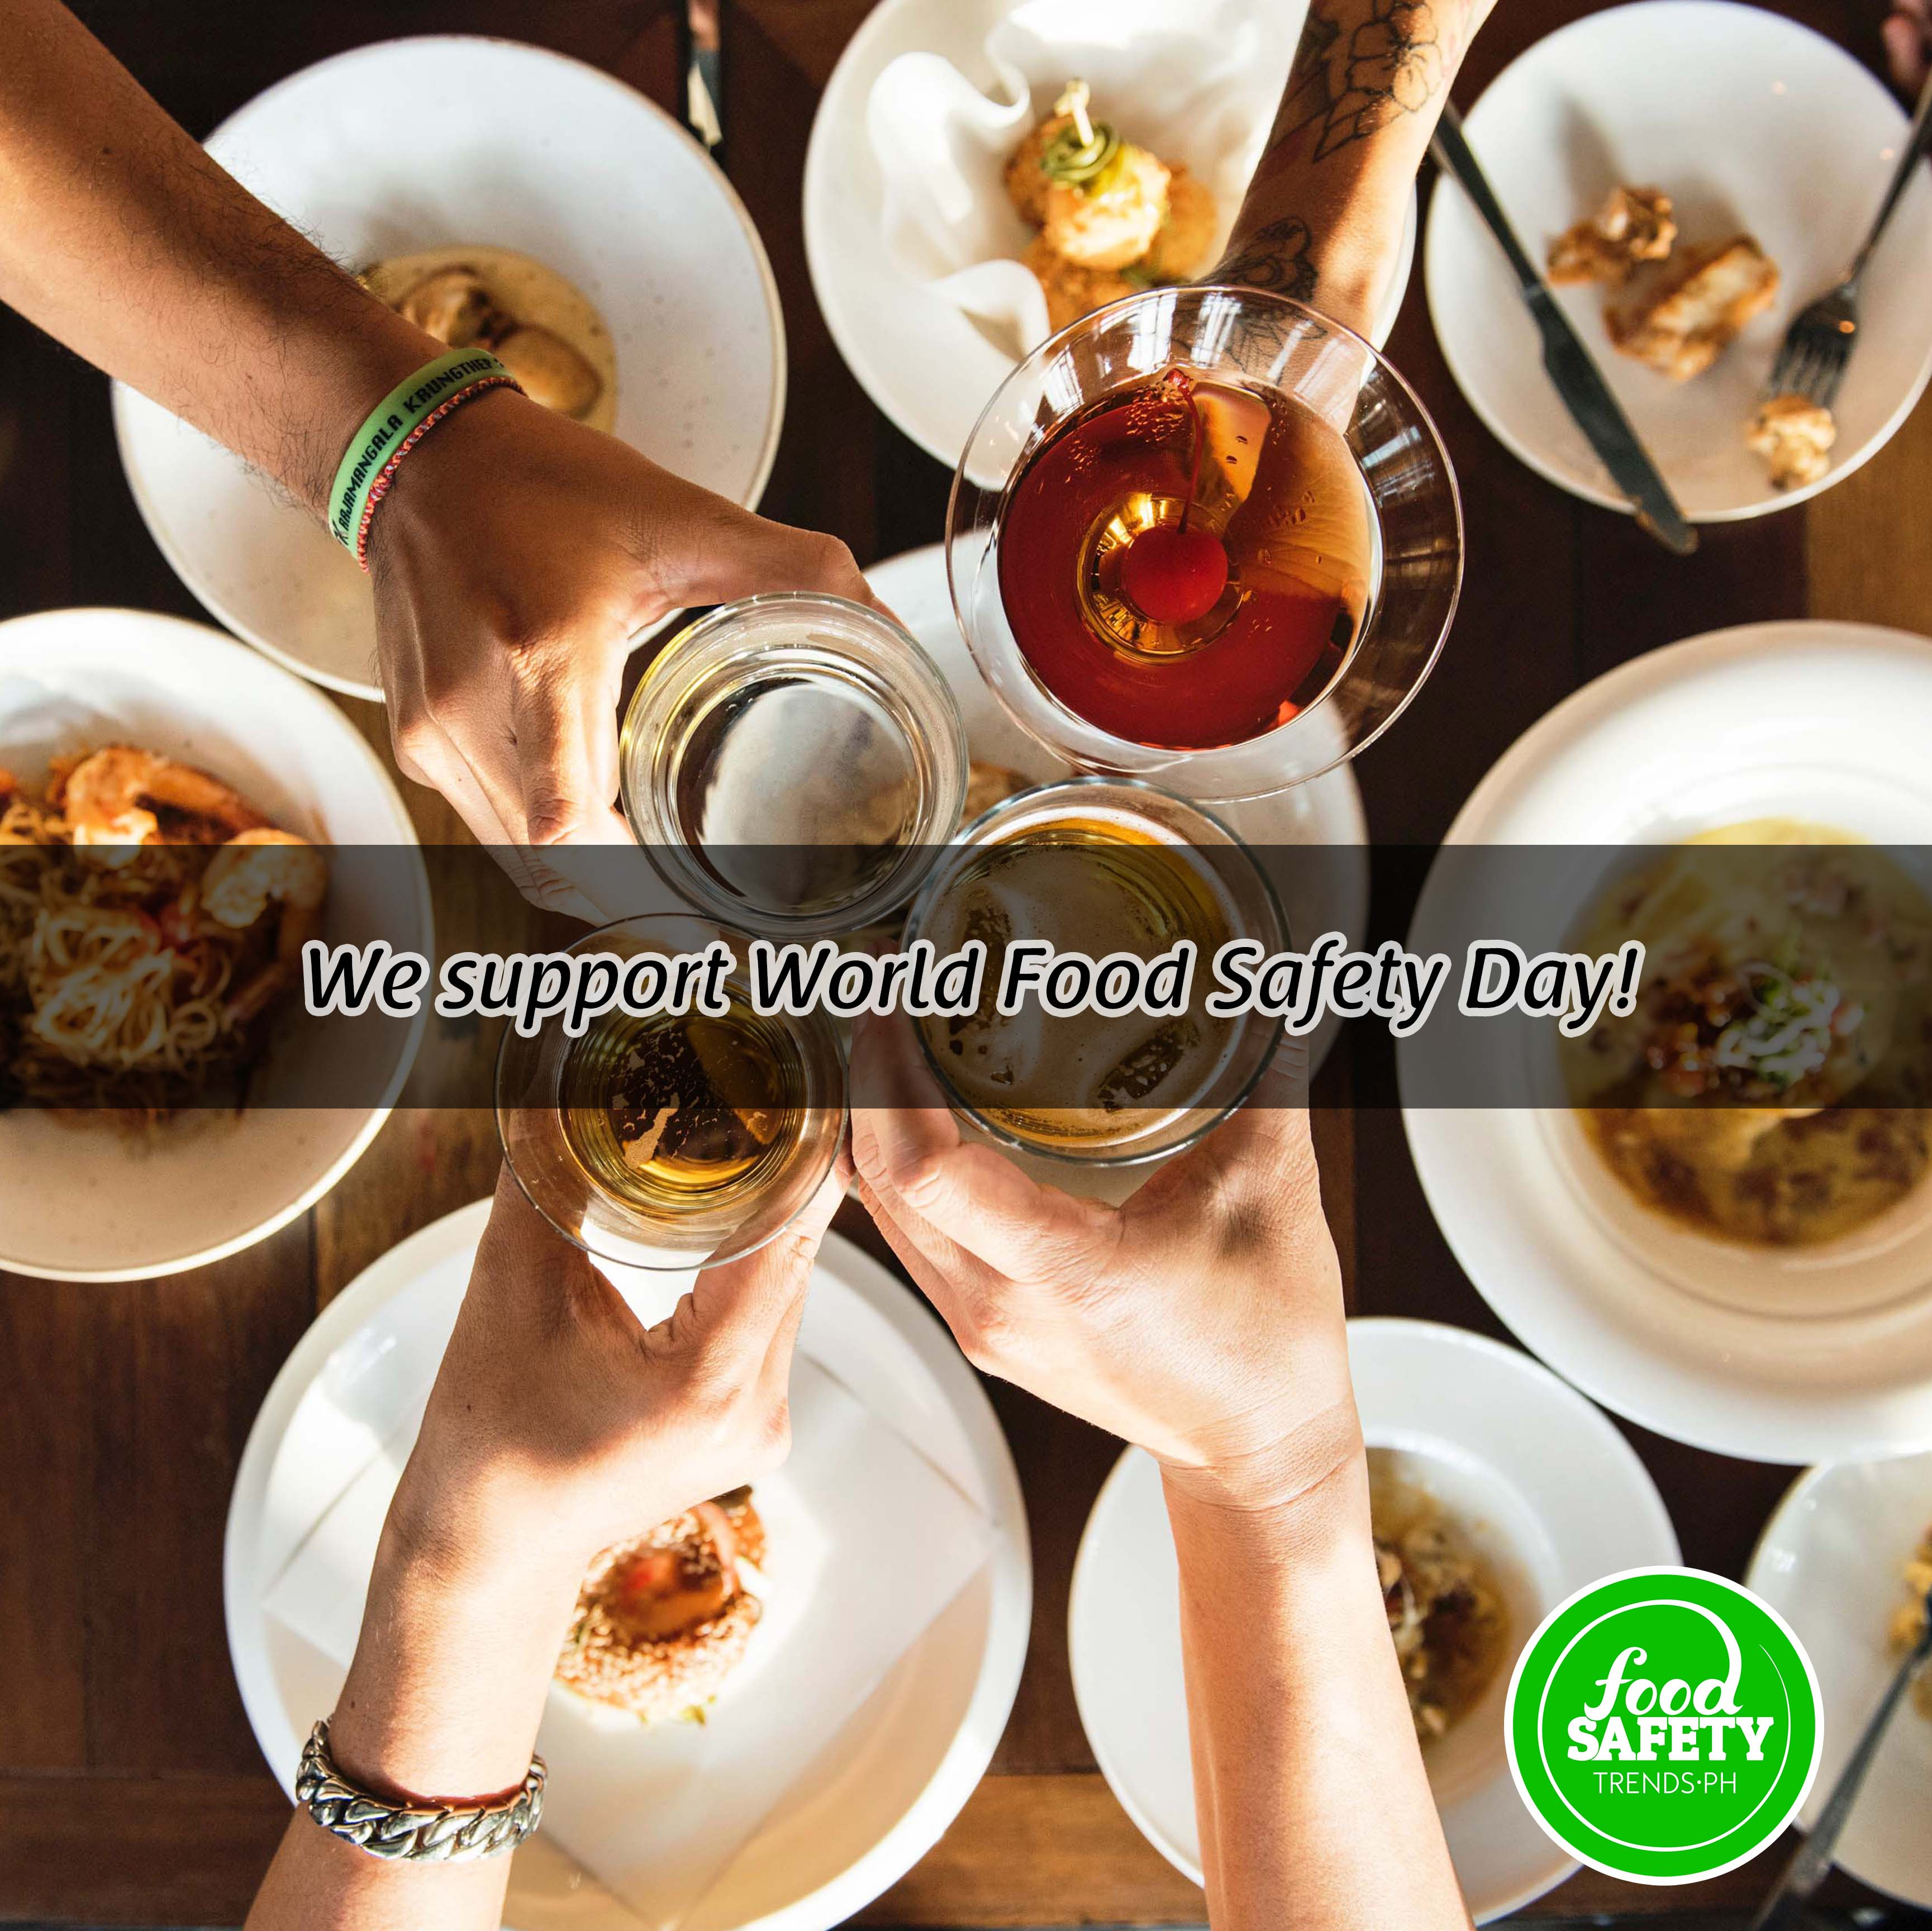 We Support World Food Safety Day